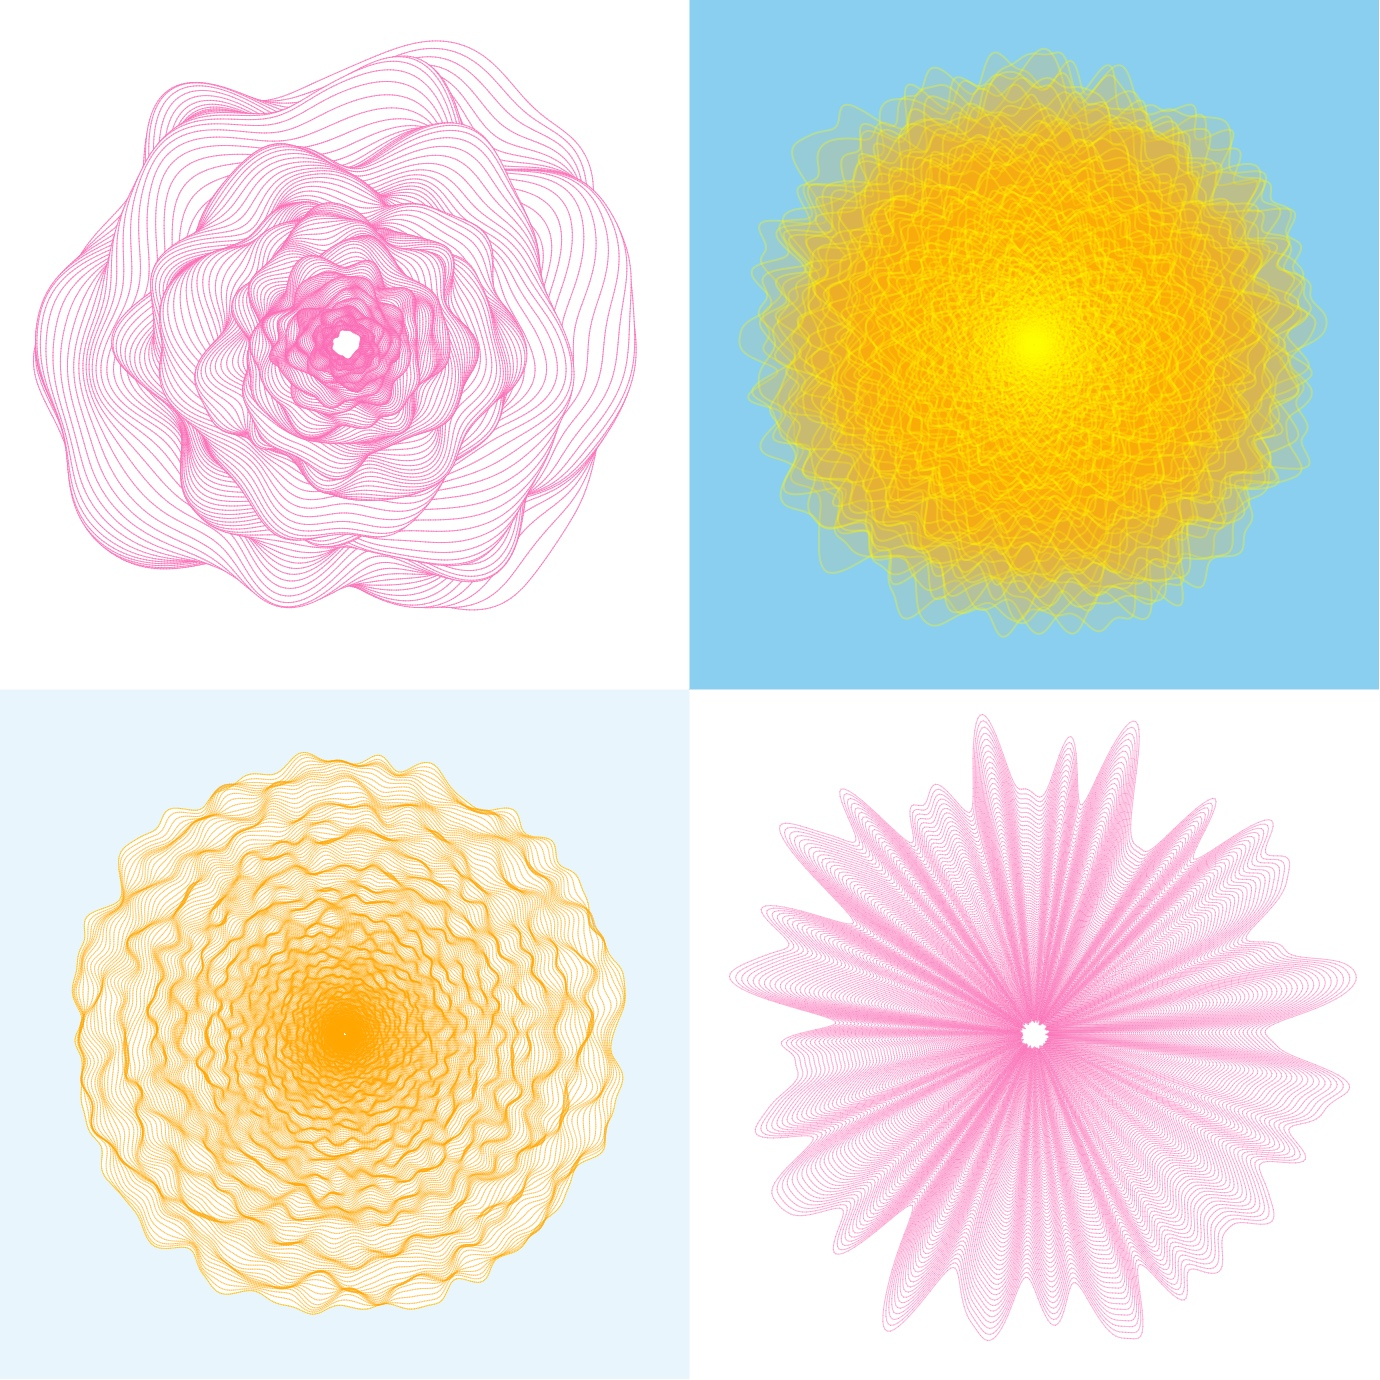 Generating Flowers Using Simplex Noise